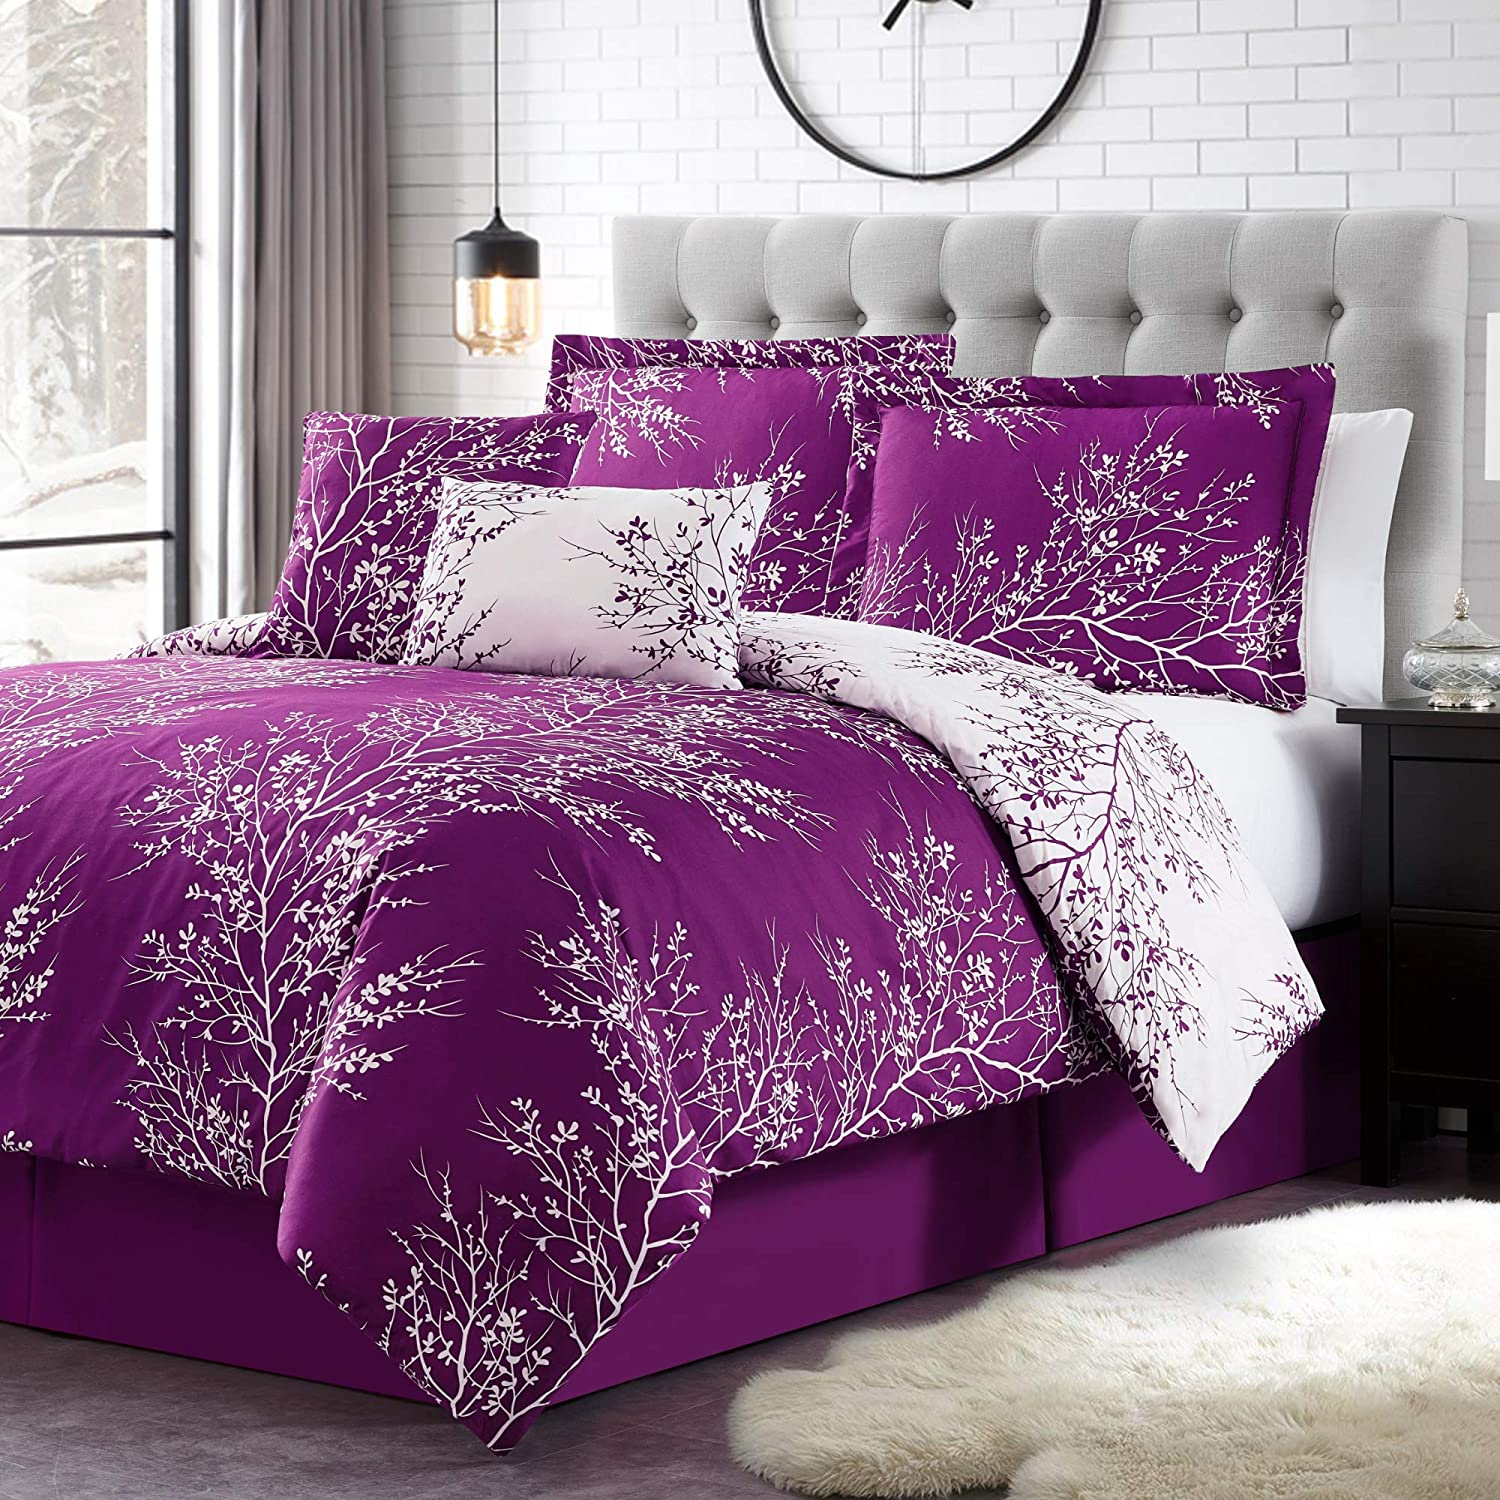 Spirit Linen 6pc Warm and Cozy Comforter Set Platinum Bedding Collection Baby Soft Texture Plush Bed Blanket (Purple, King)